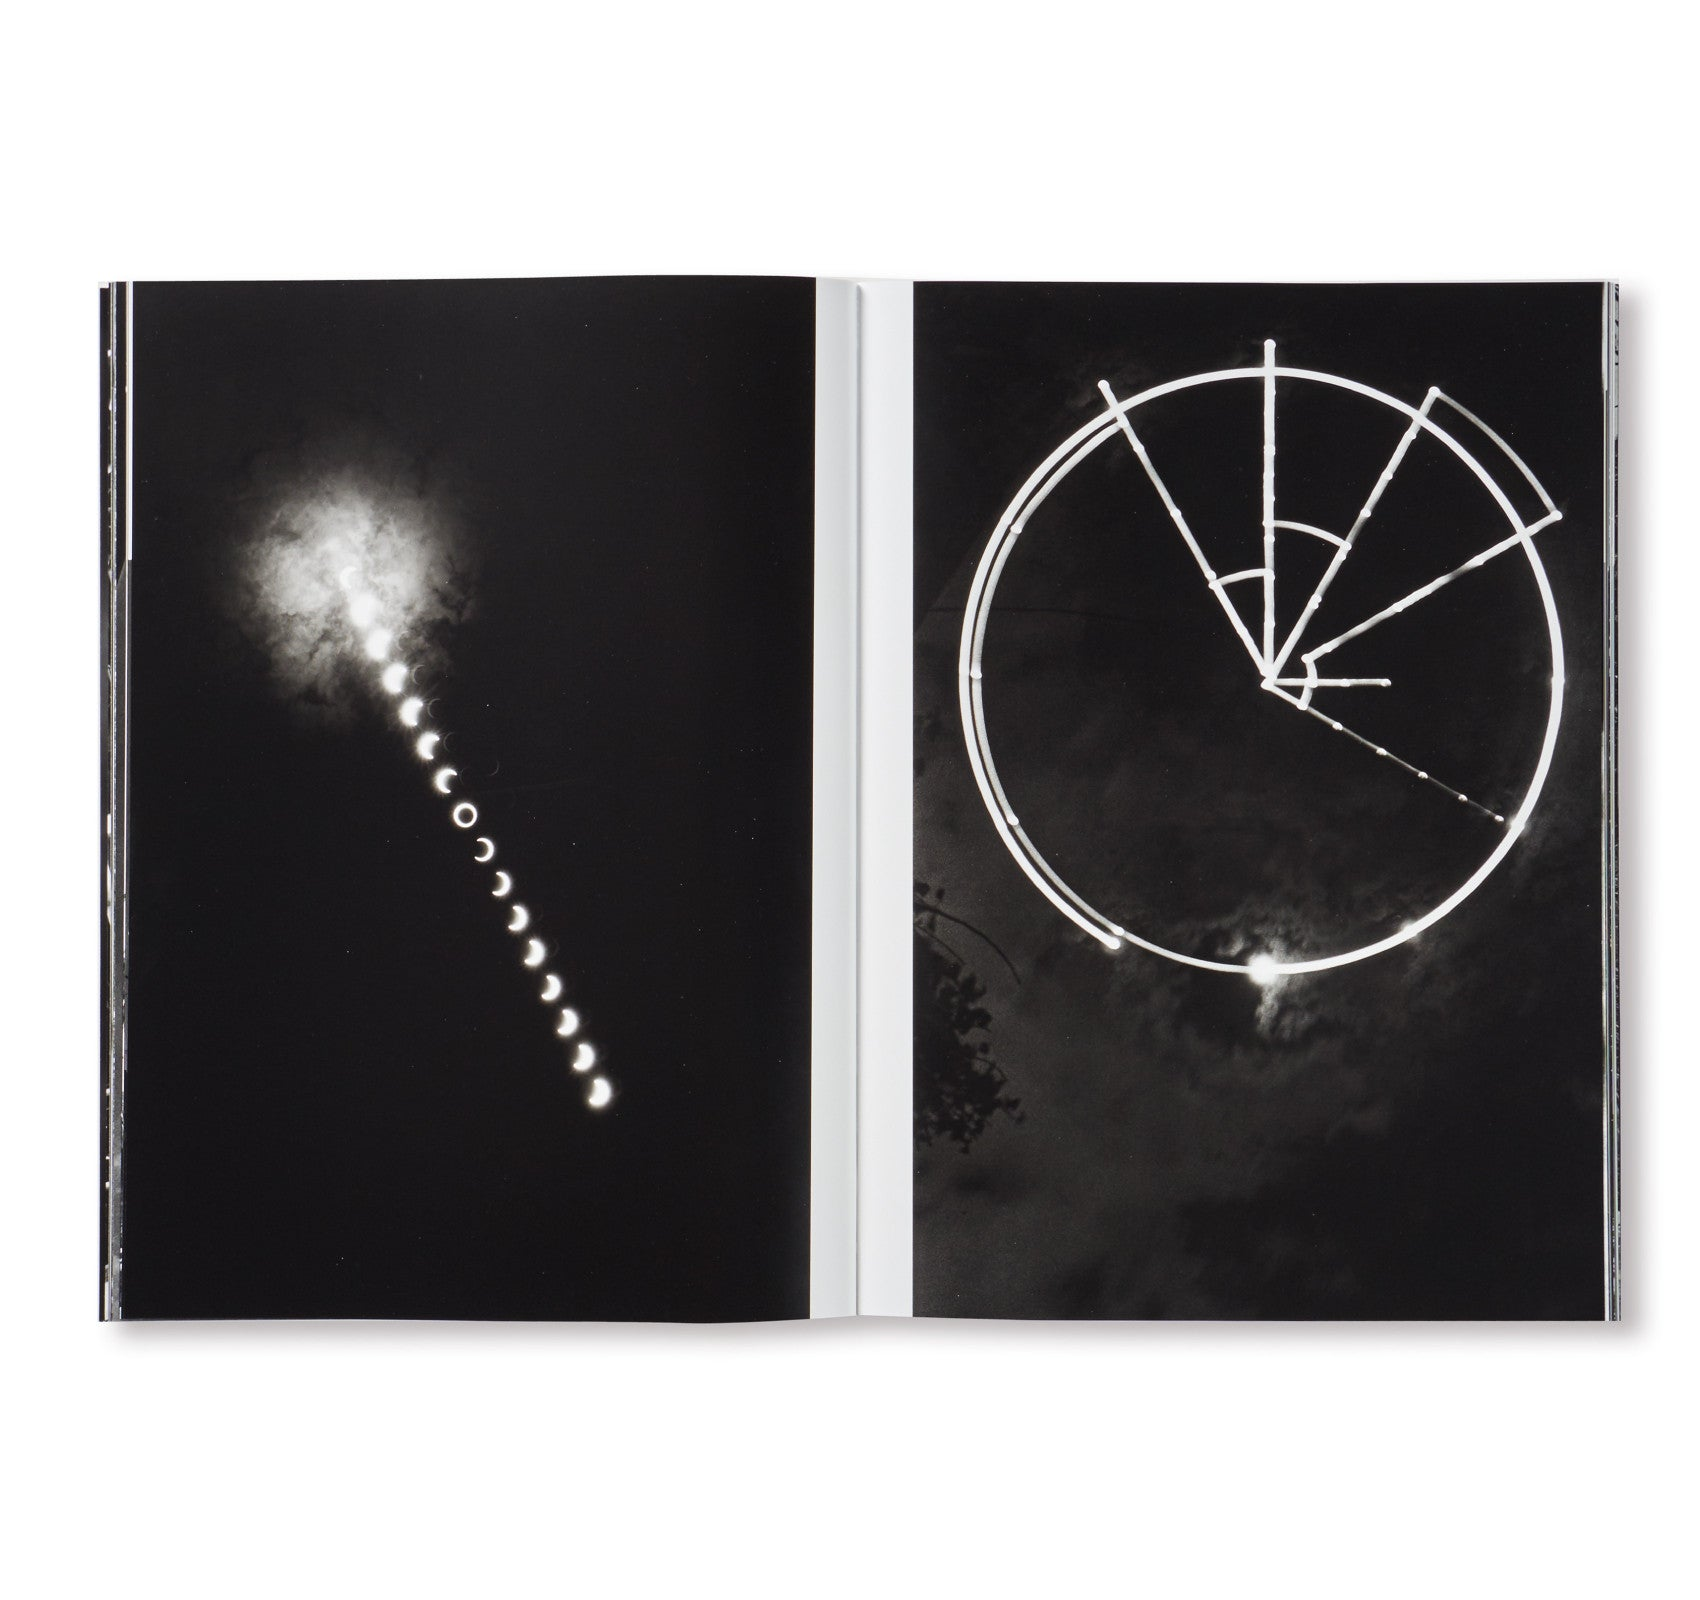 THE LAST COSMOLOGY by Kikuji Kawada